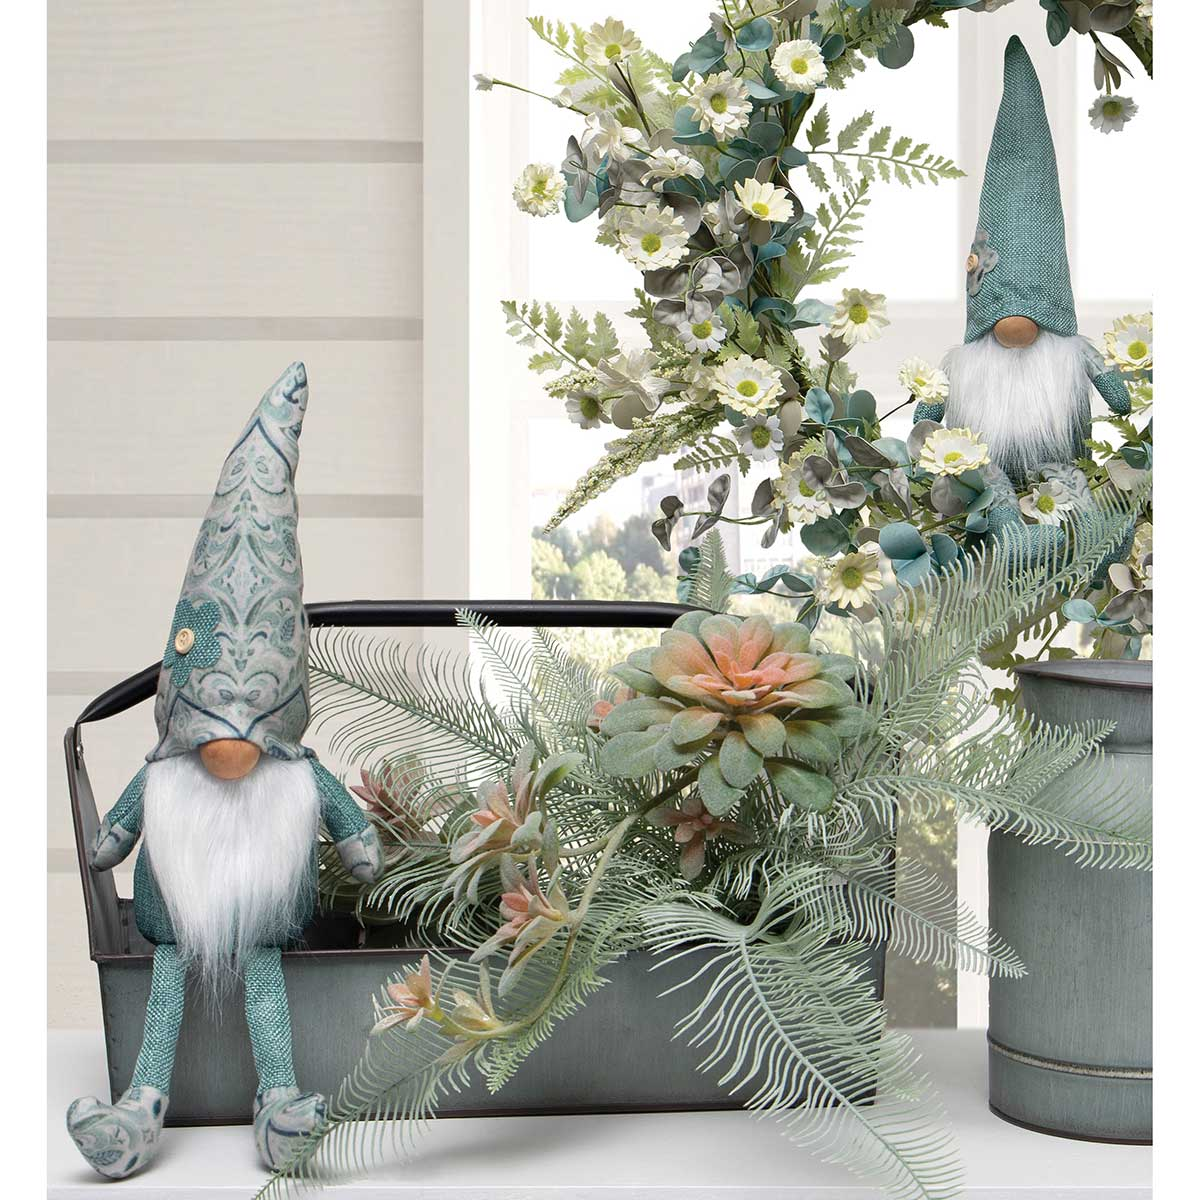 "CHATEAUX BOYS GNOME WITH HAT, WOOD NOSE, WHITE BEARD 15""(2 Styles Sold Separately)"